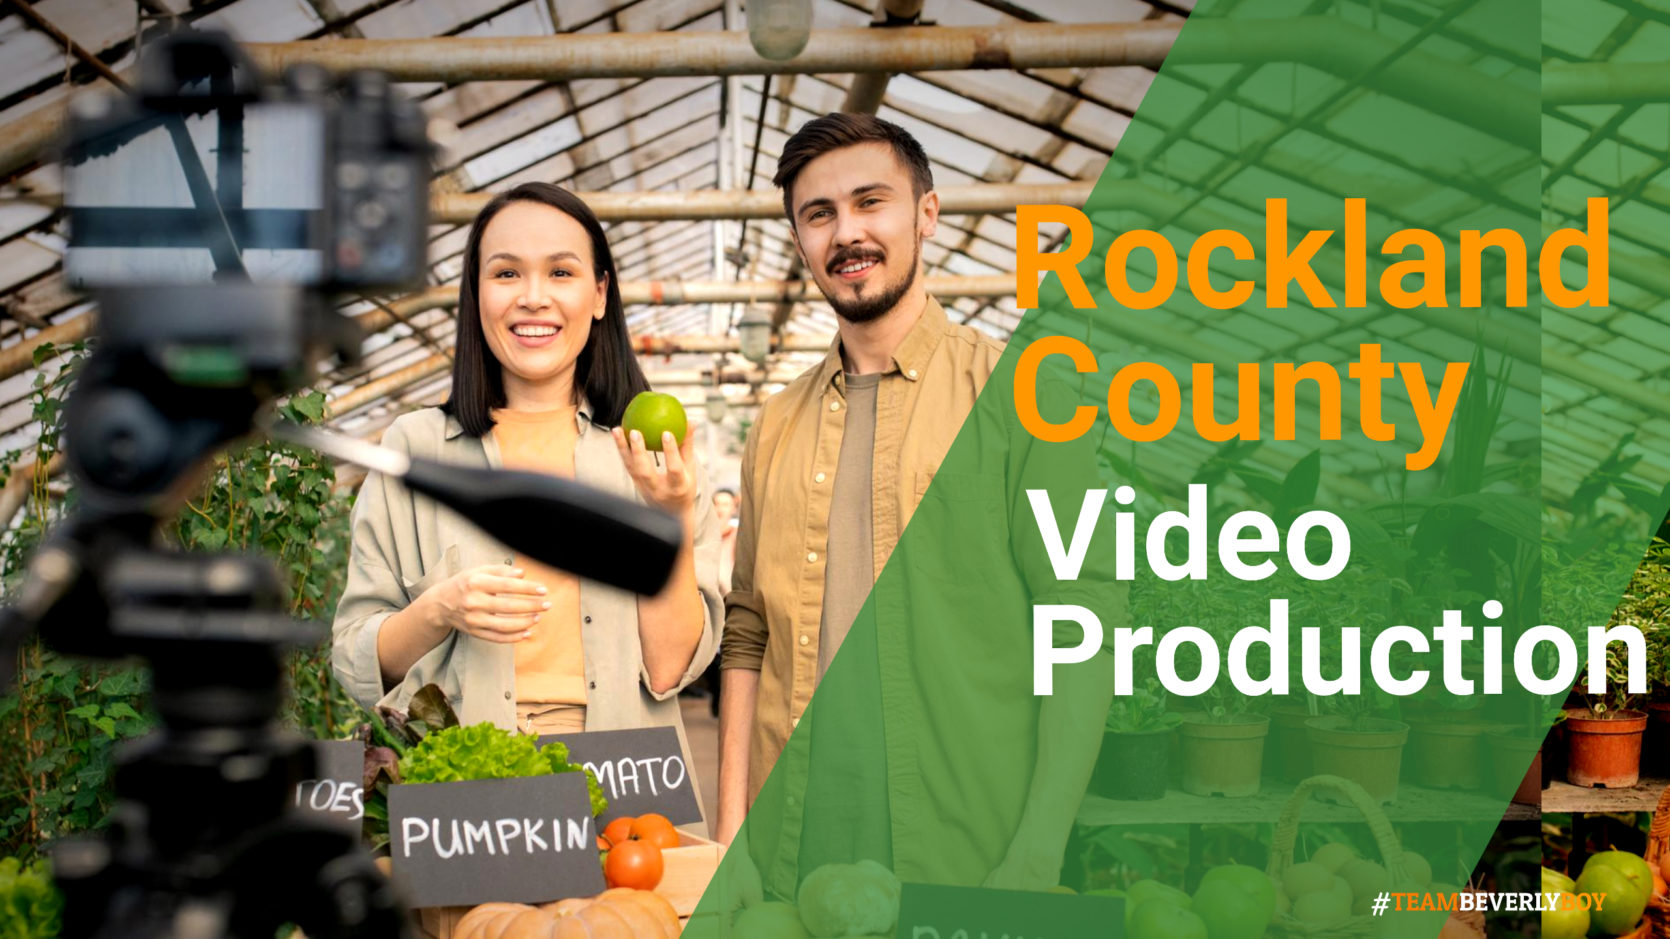 Rockland county video production